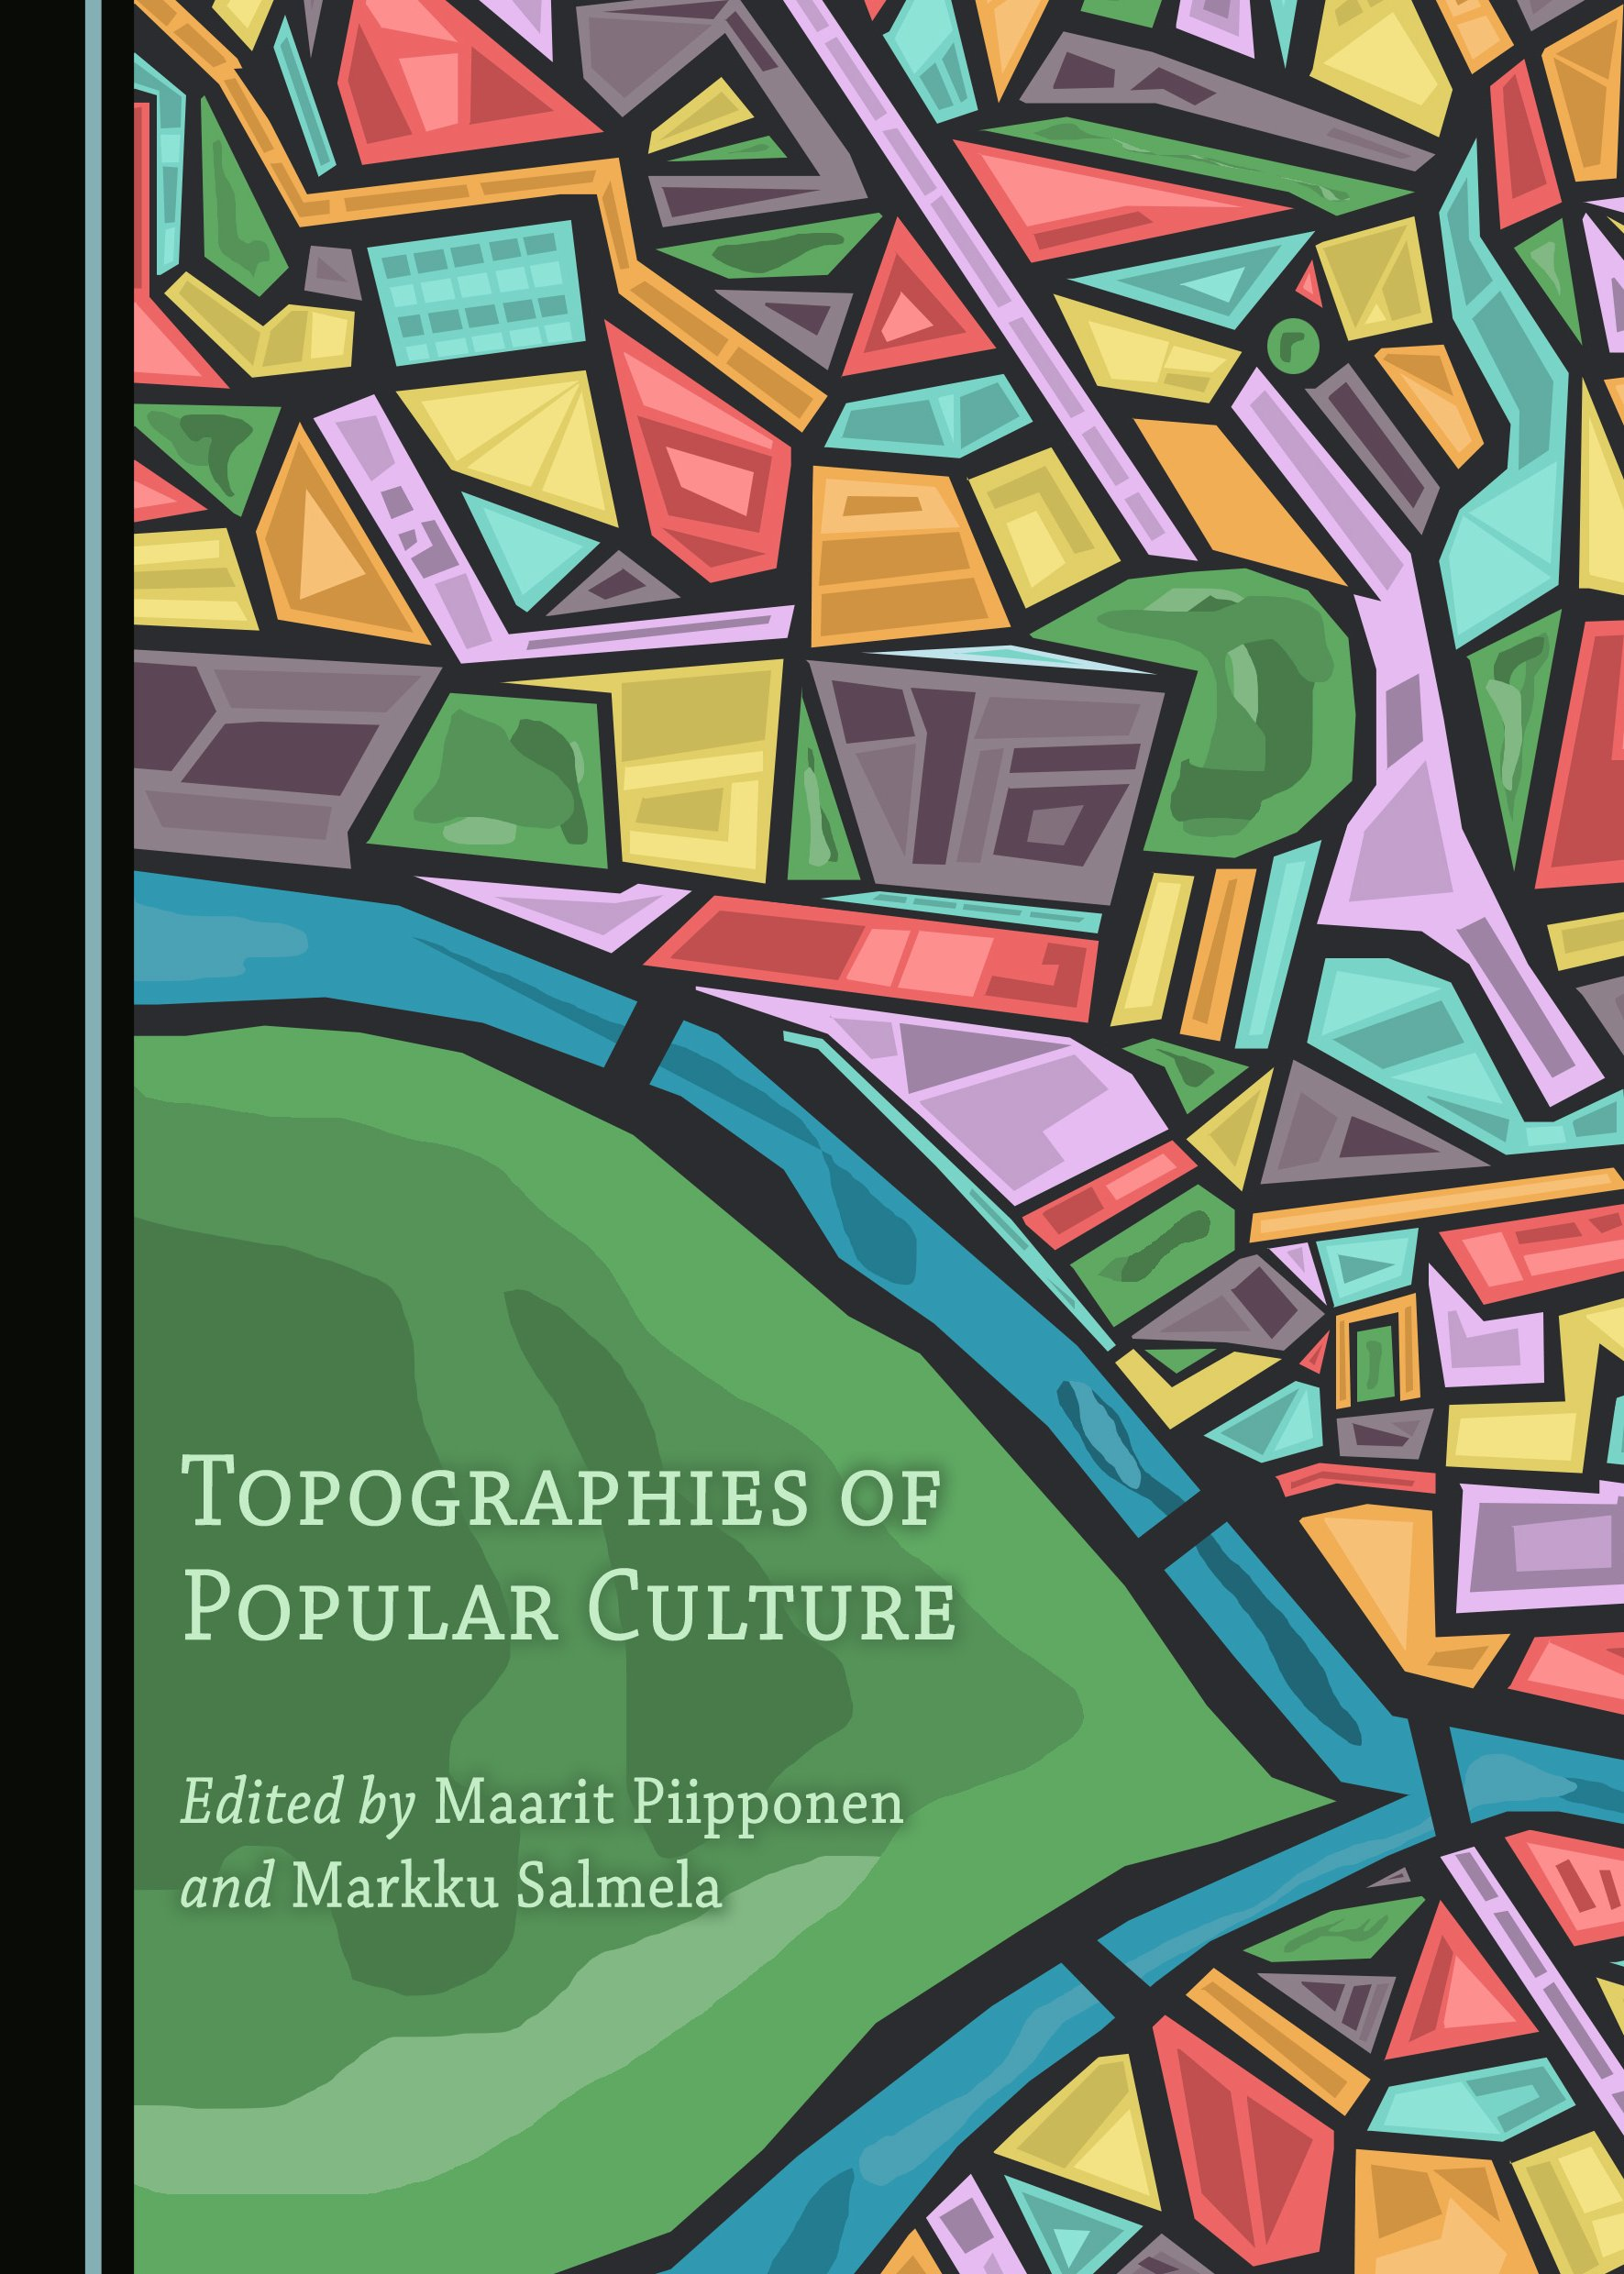 Topographies of Popular Culture